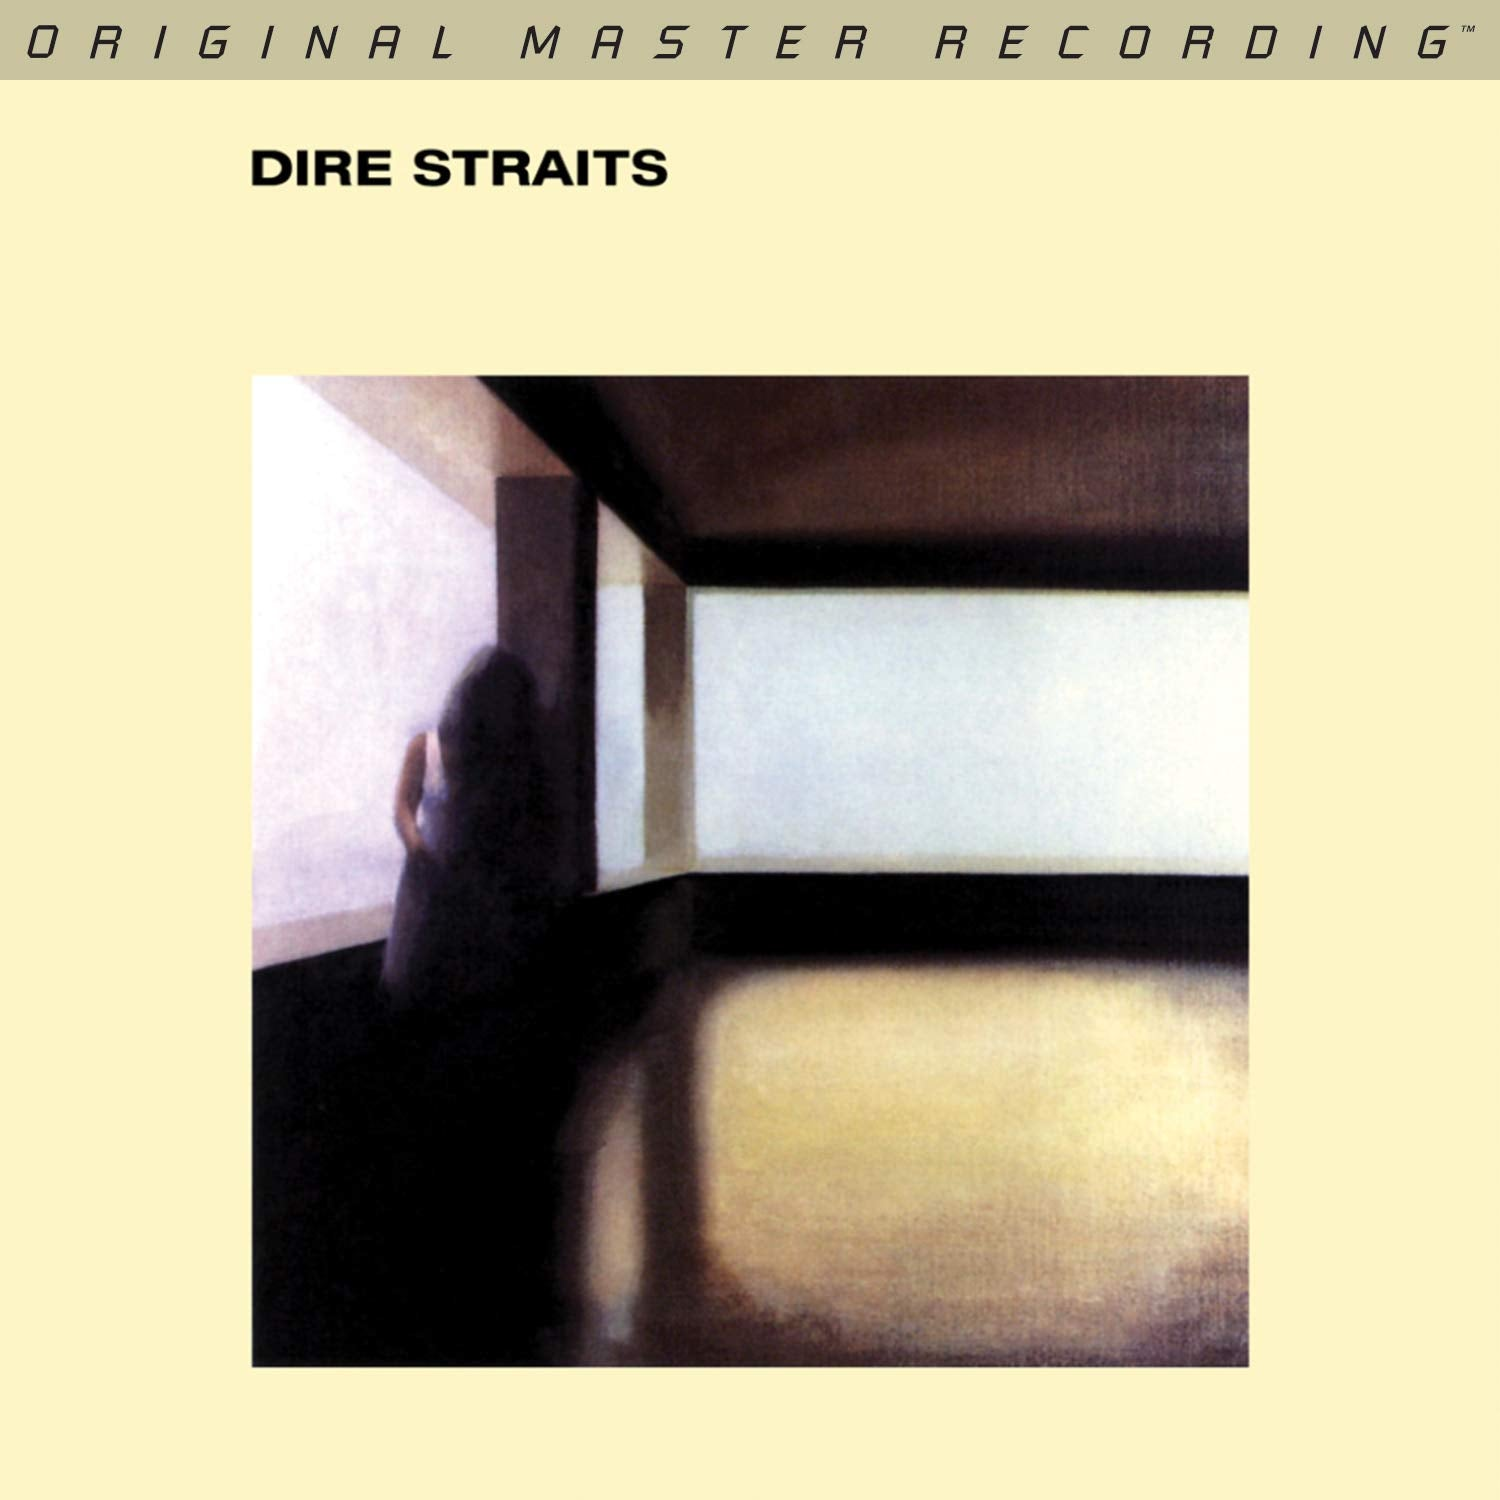 Dire Straits - Dire Straits [2LP] (180 Gram 45RPM Audiophile Vinyl, limited/numbered) - Urban Vinyl | Records, Headphones, and more.